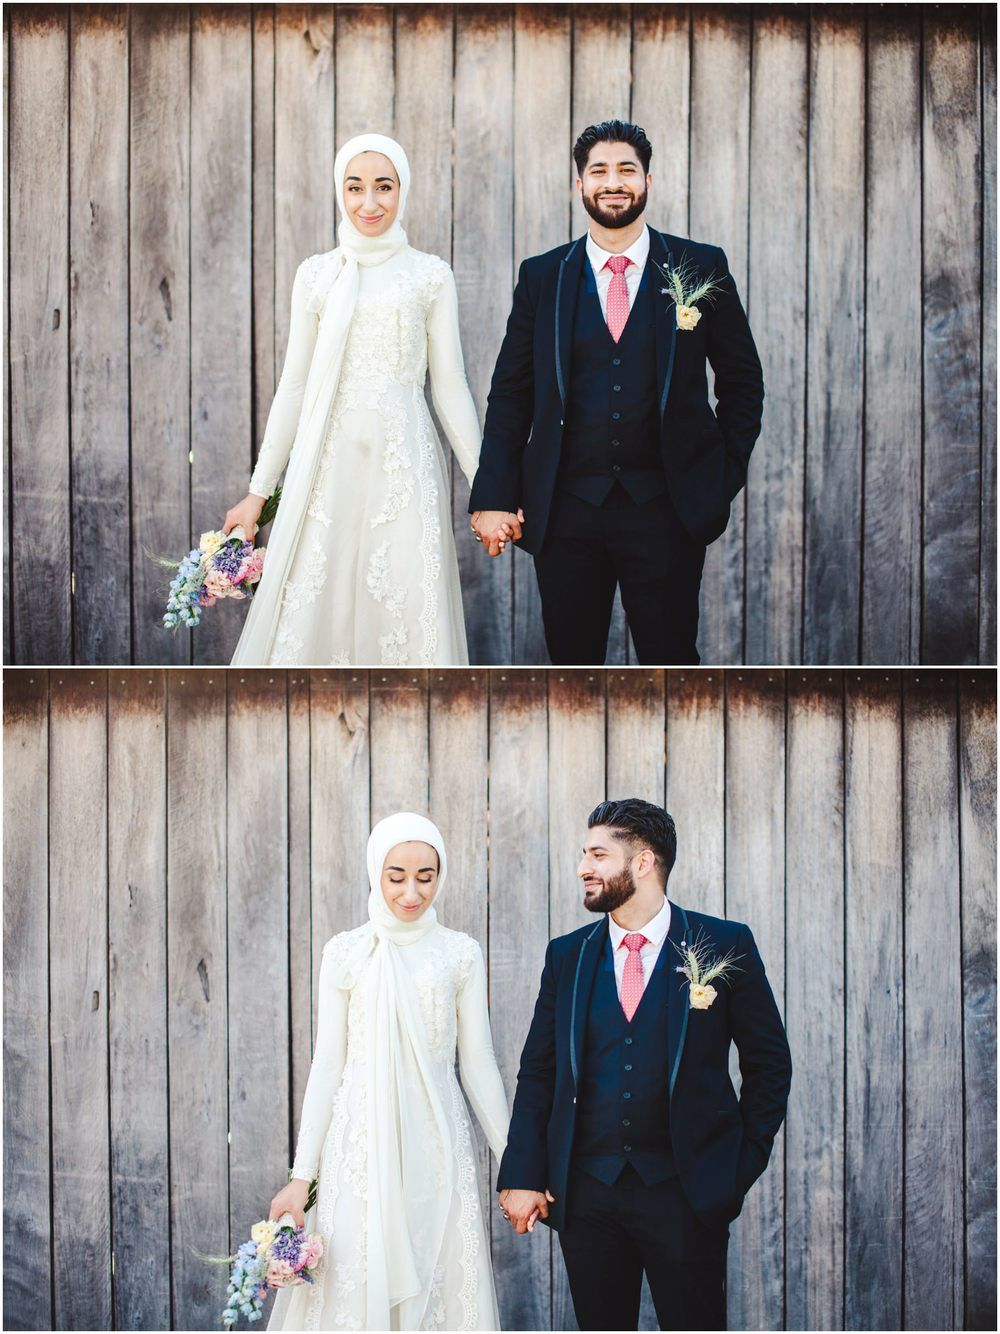 Suzanne neemaus traditional muslim wedding at the sydney polo club